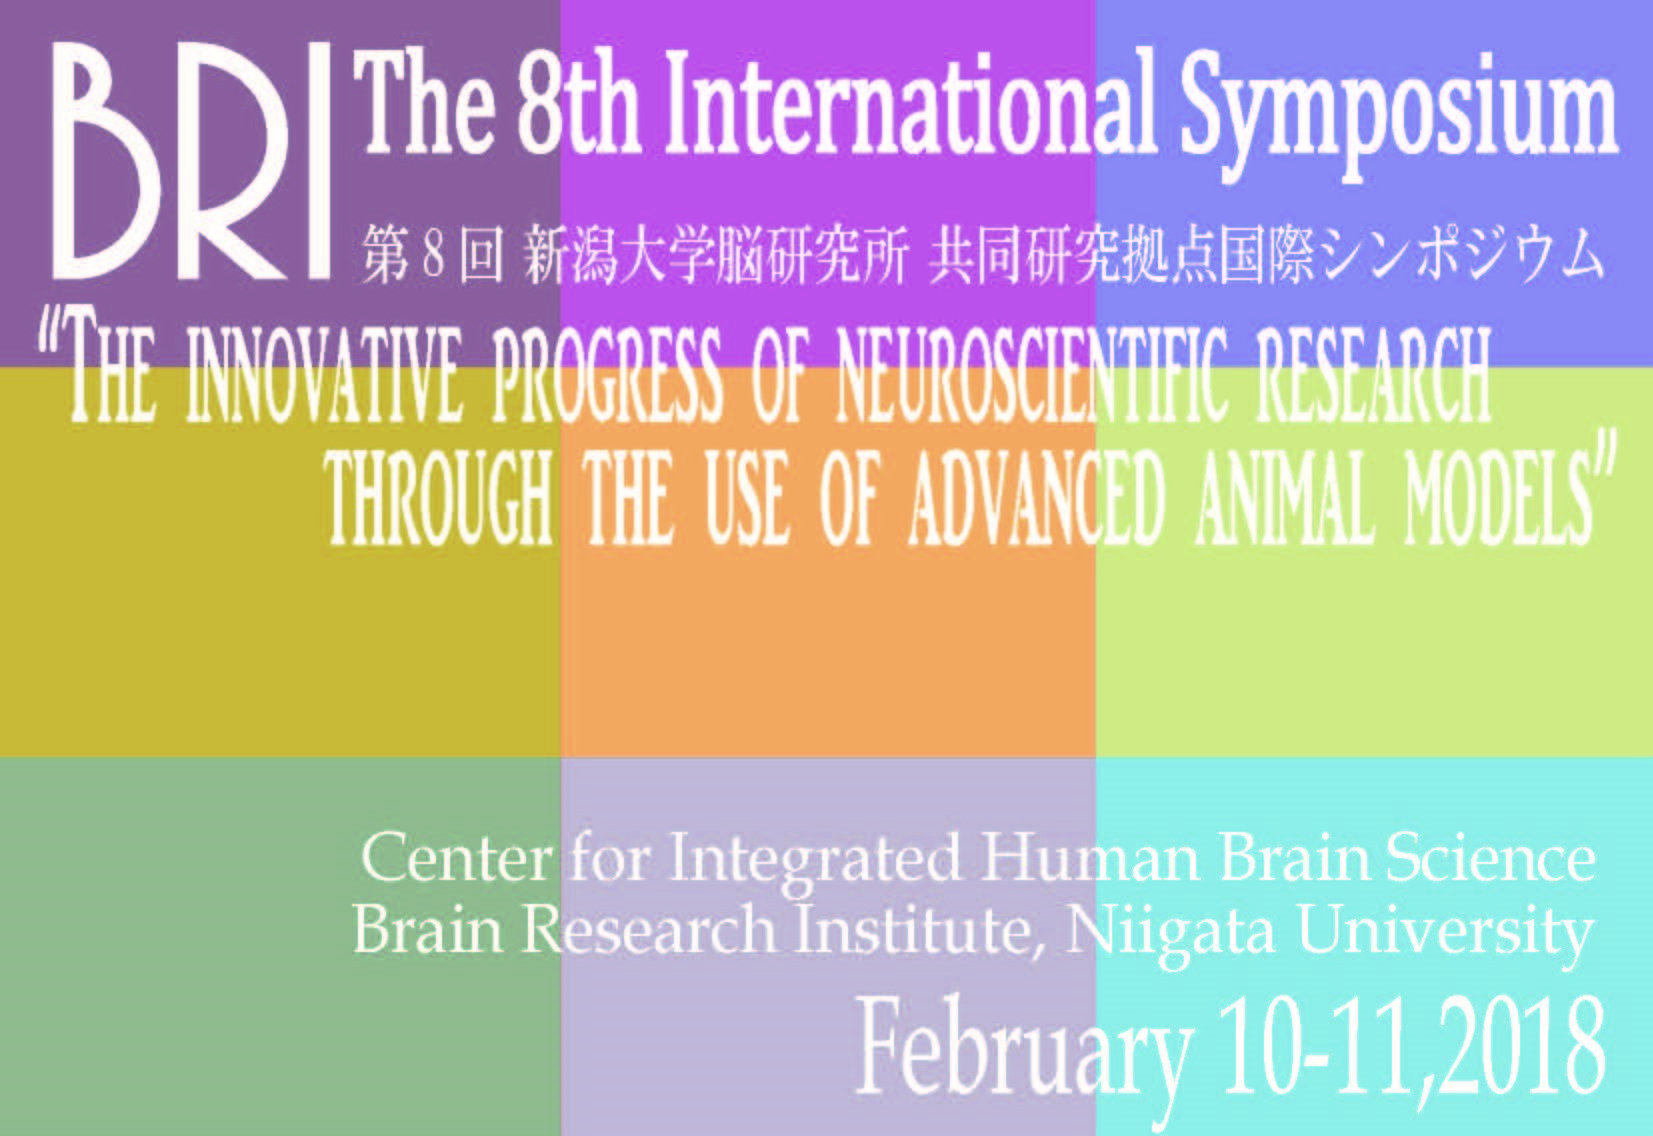 The 8th BRI International Symposium. February 10th - 11th, 2018